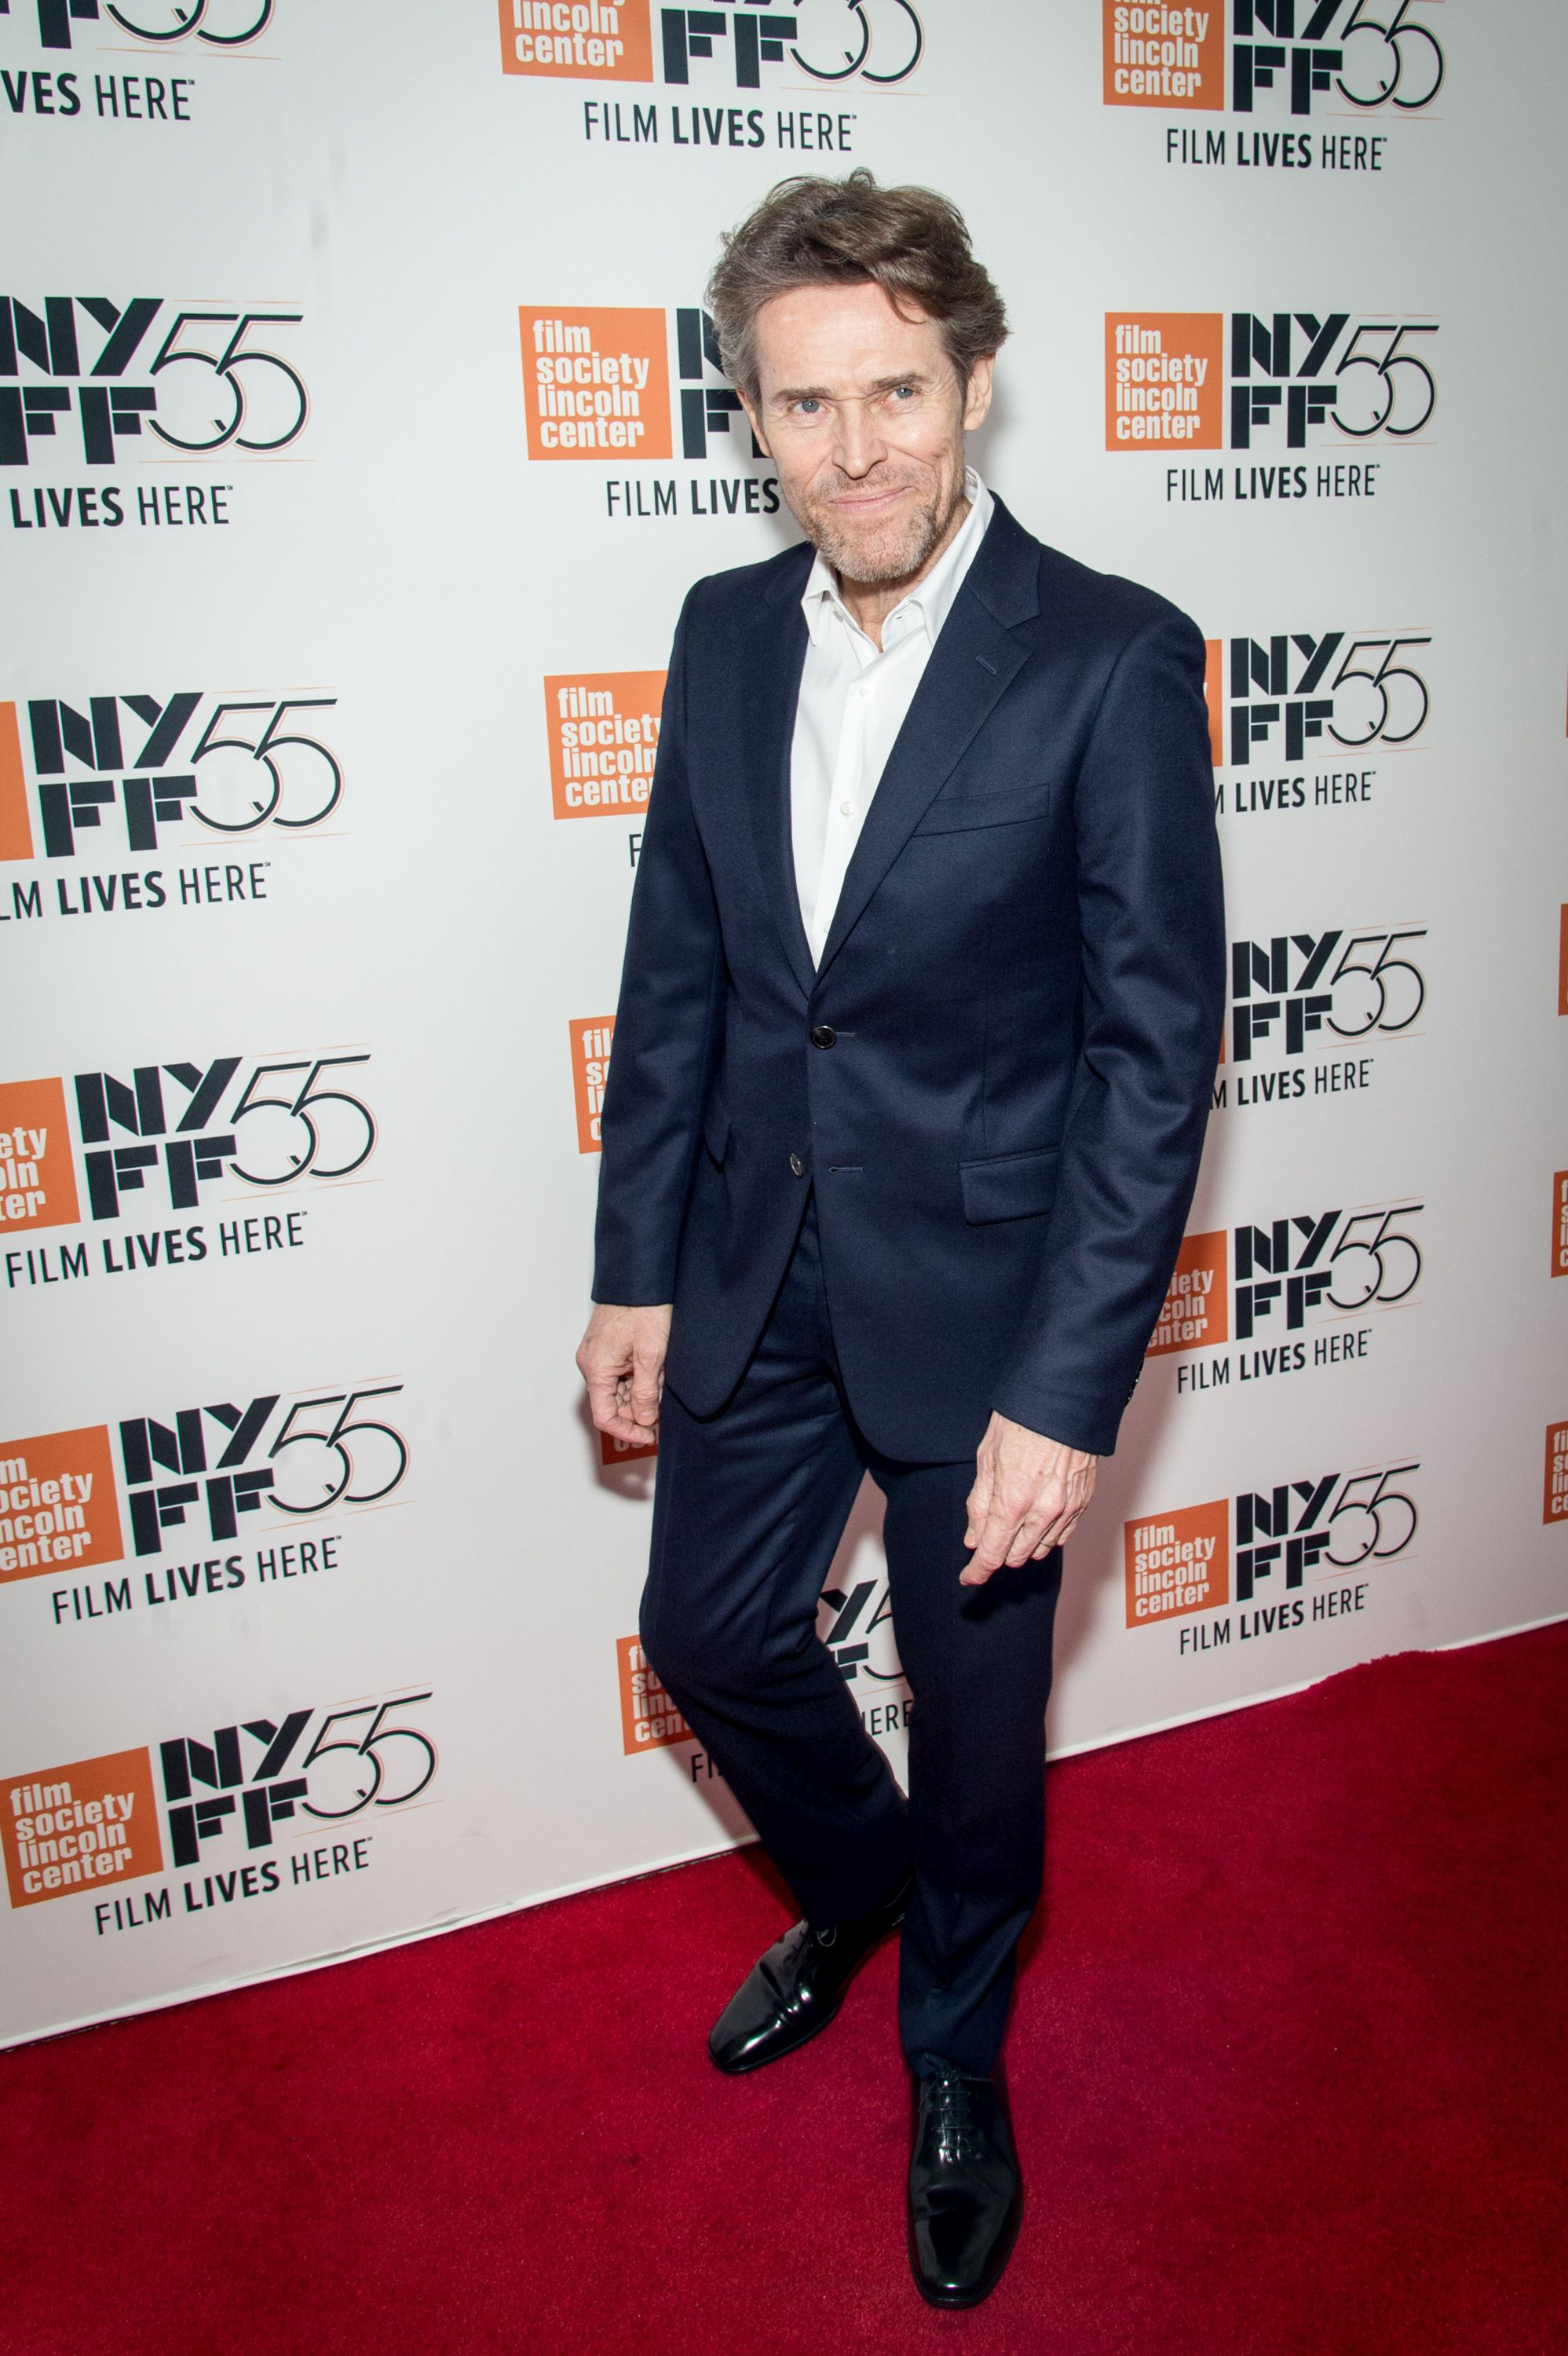 Willem Dafoe'The Florida Project' premiere, Arrivals, 55th New York Film Festival, USA - 01 Oct 2017